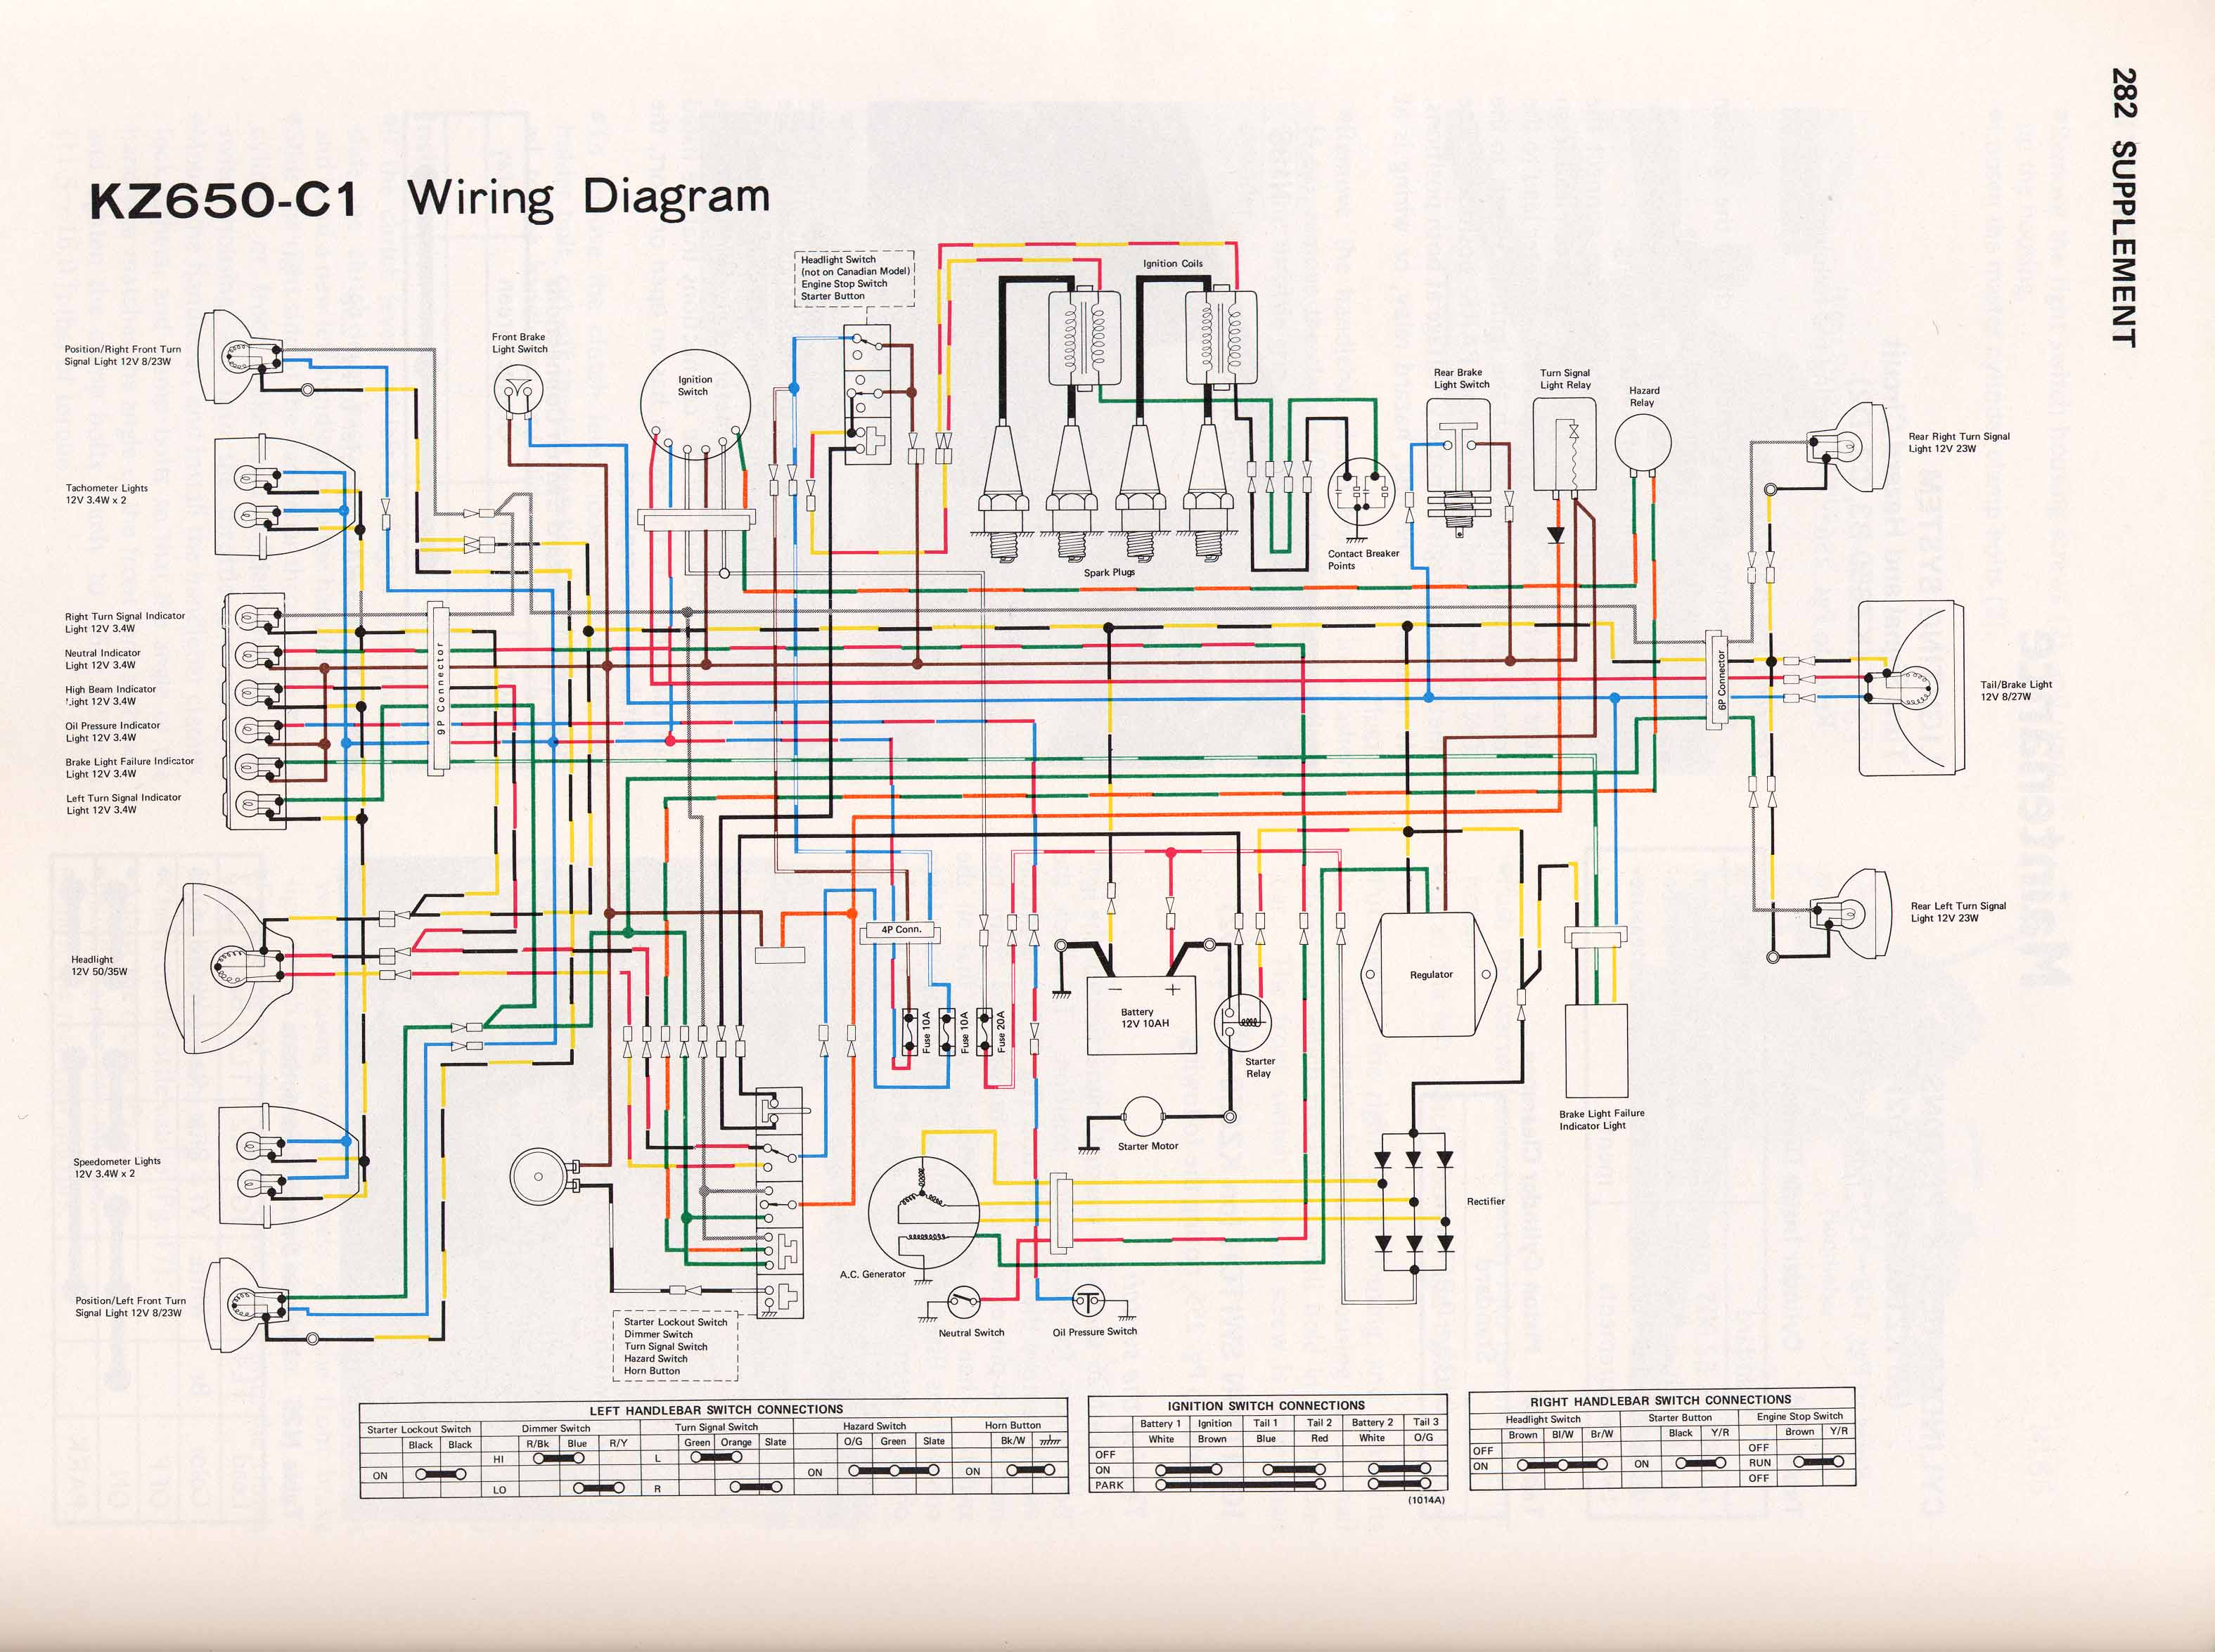 Kawasaki Kz550 Easy Wiring Diagram Reinvent Your Z 550 Kz650 Info Diagrams Rh 83 Gpz